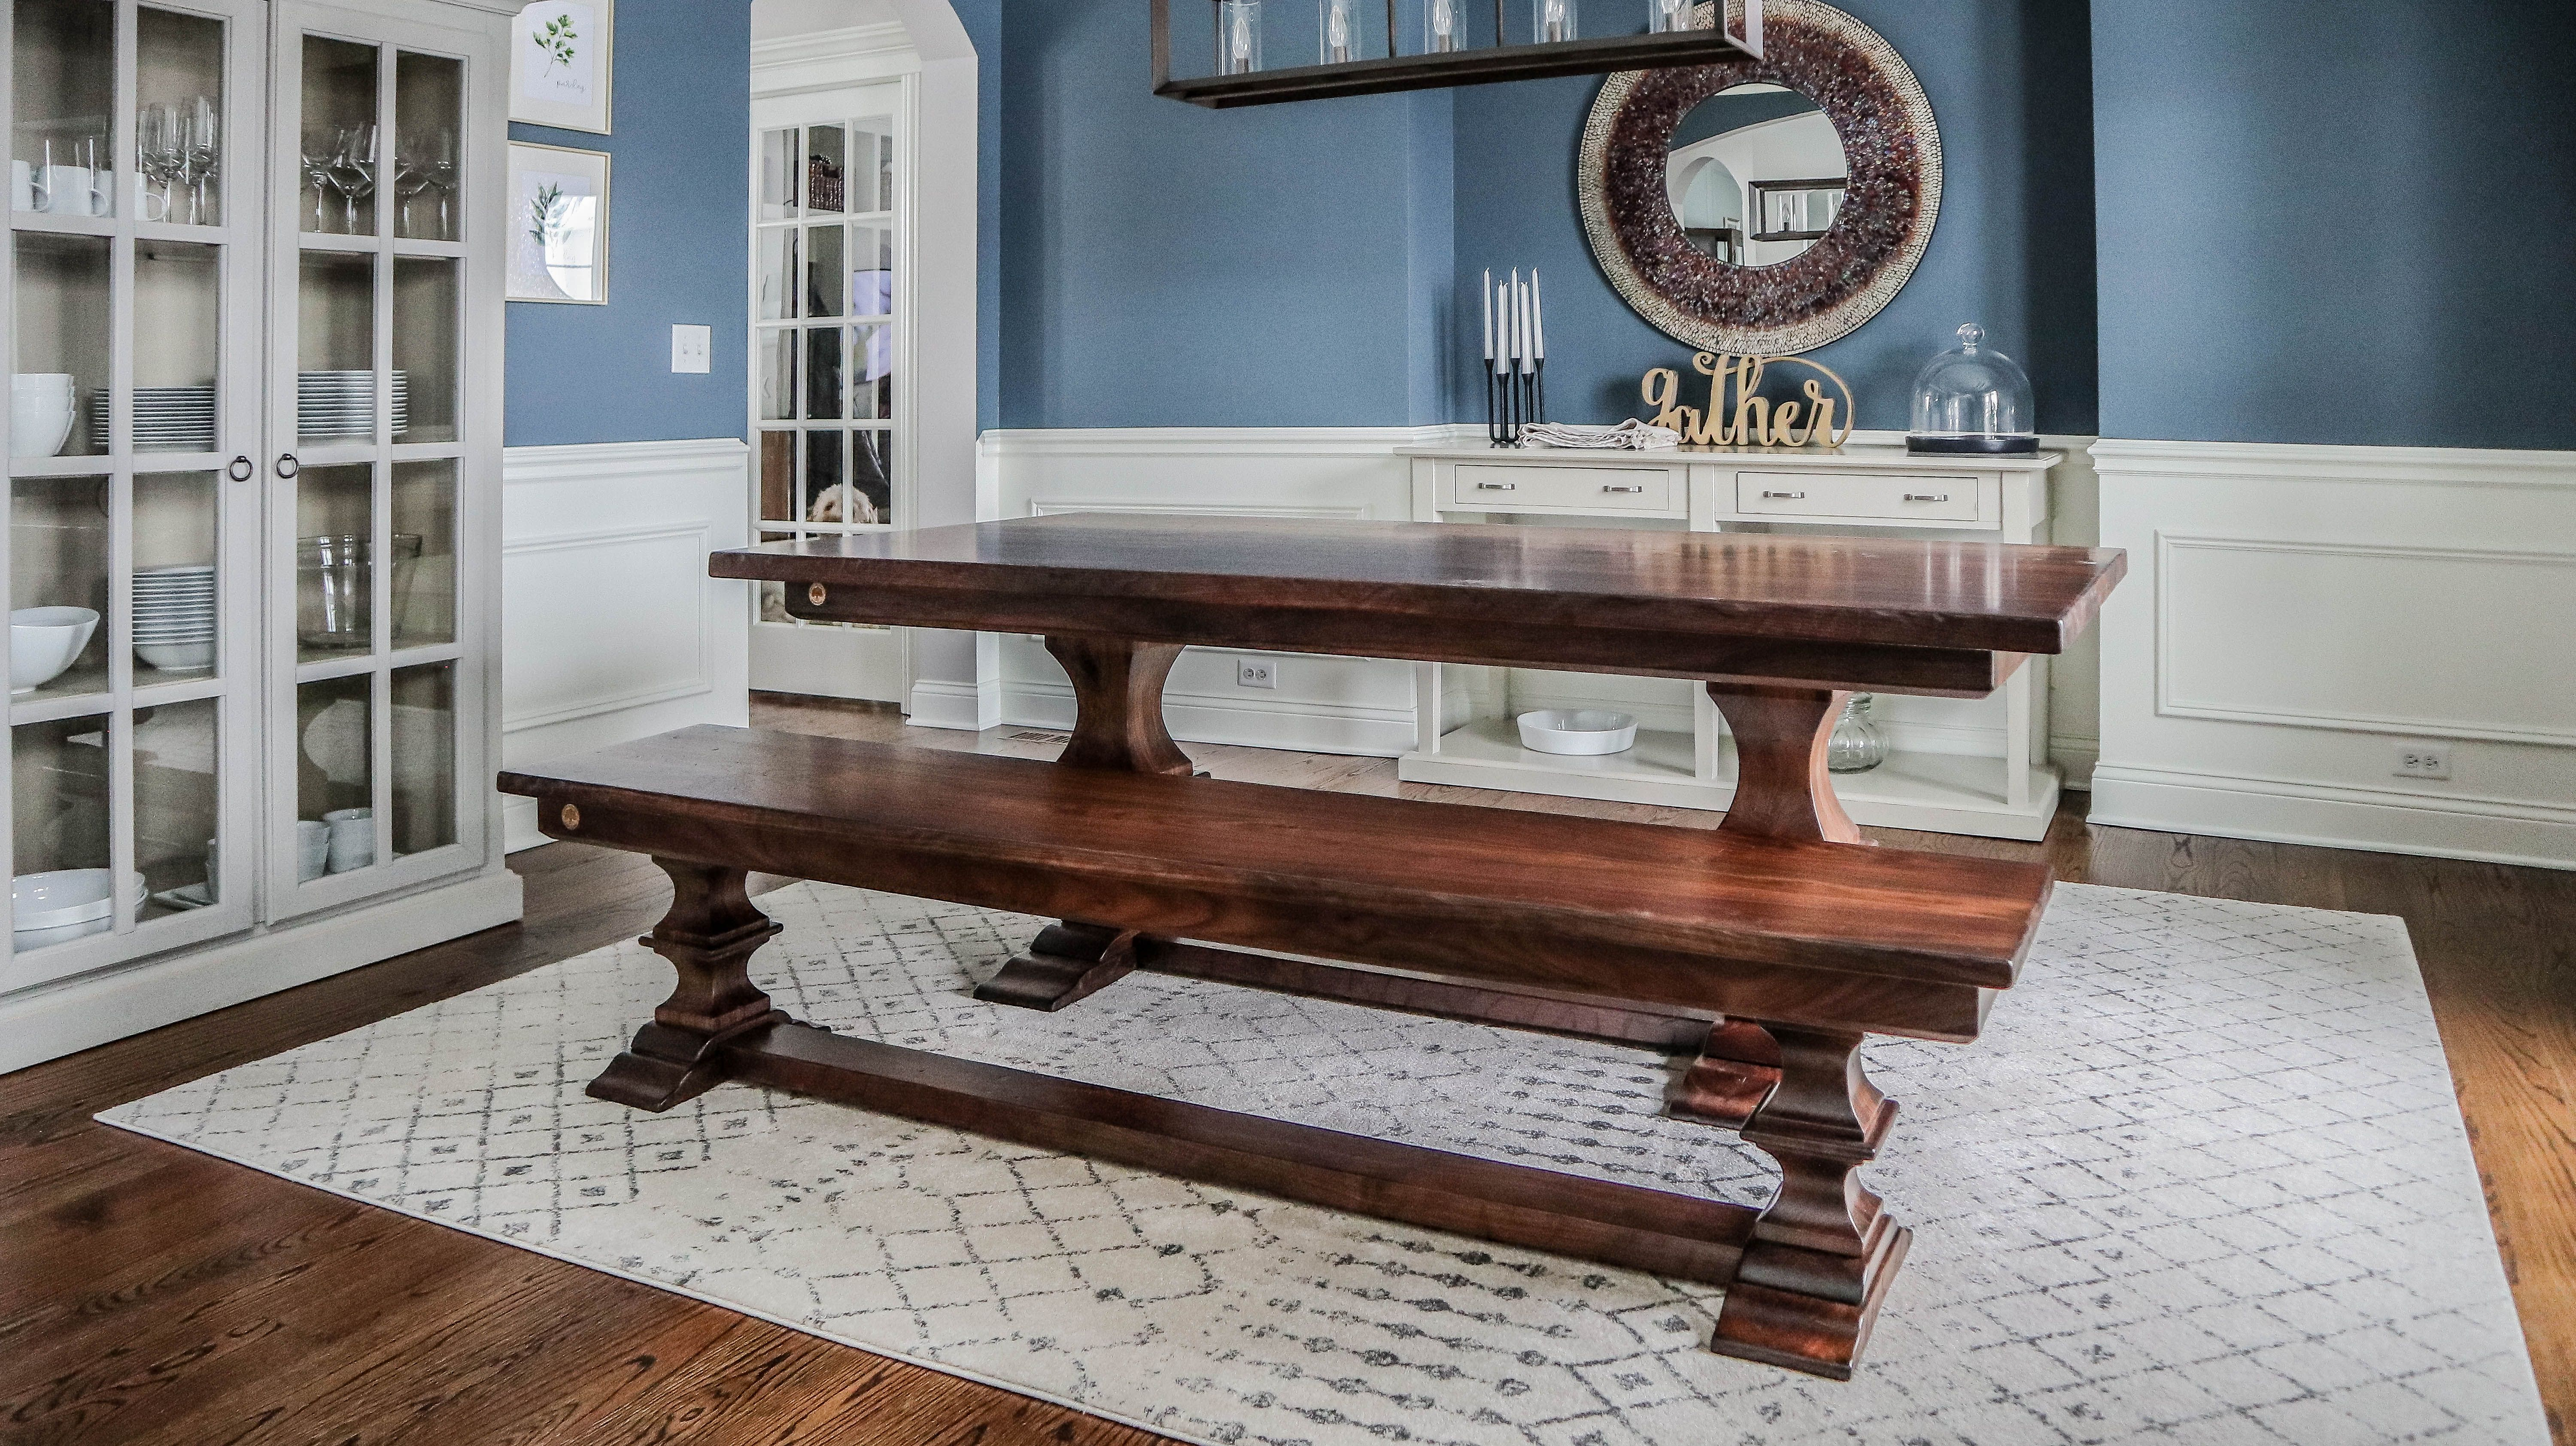 A fabulous dining room design! This is one of our ready-made tables, purchased from our showroom floor! Made from walnut, left natural, with a bench to match.  #diningroomtable #diningroomdecor #diningroomdesign #diningroominspo #tabledesign #inspo #farmhouse #farmhousecontemporary #interiordesign #interiordesignofpinterest